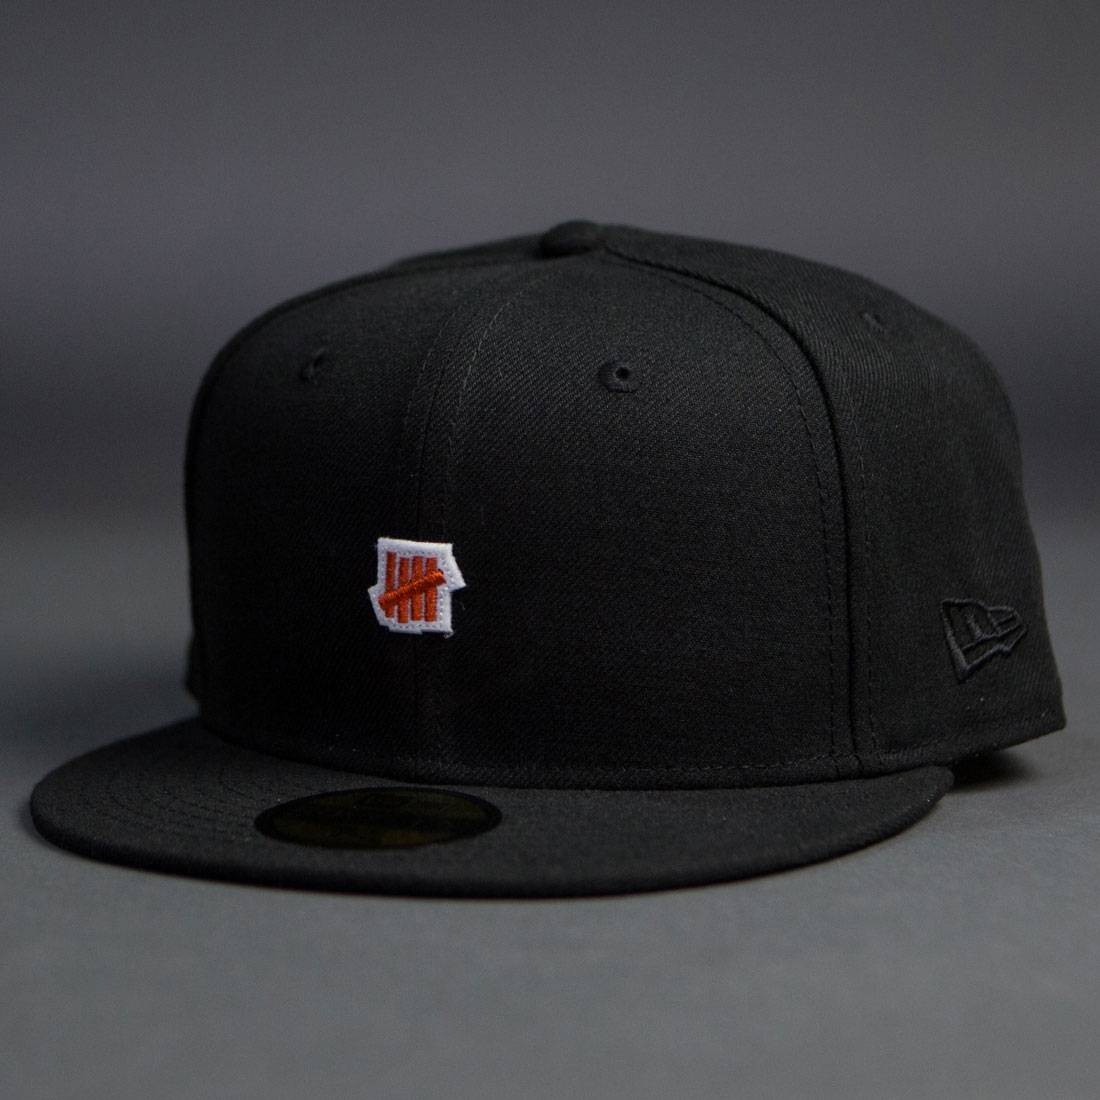 c94ccc90da1cc Undefeated Small 5 Strike New Era Cap black